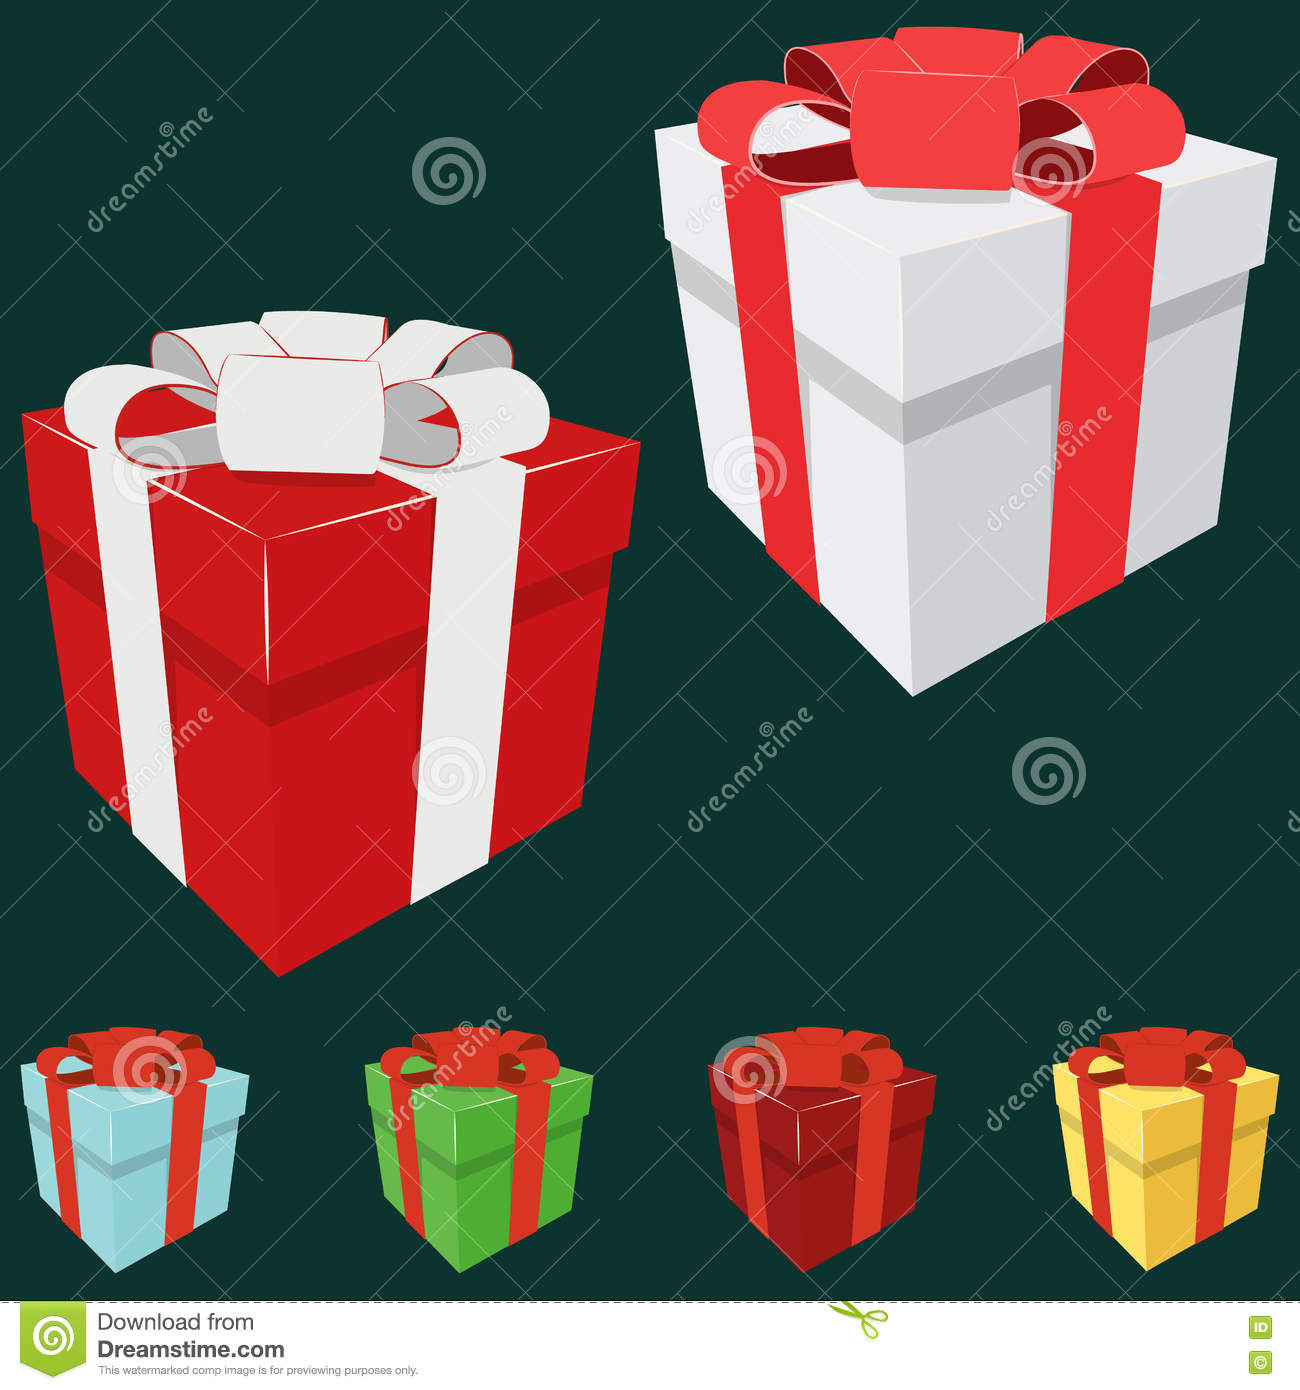 gift box birthday christmas celebration new year 3d anniversary valentine love xmas illustration holiday icon shopping color party